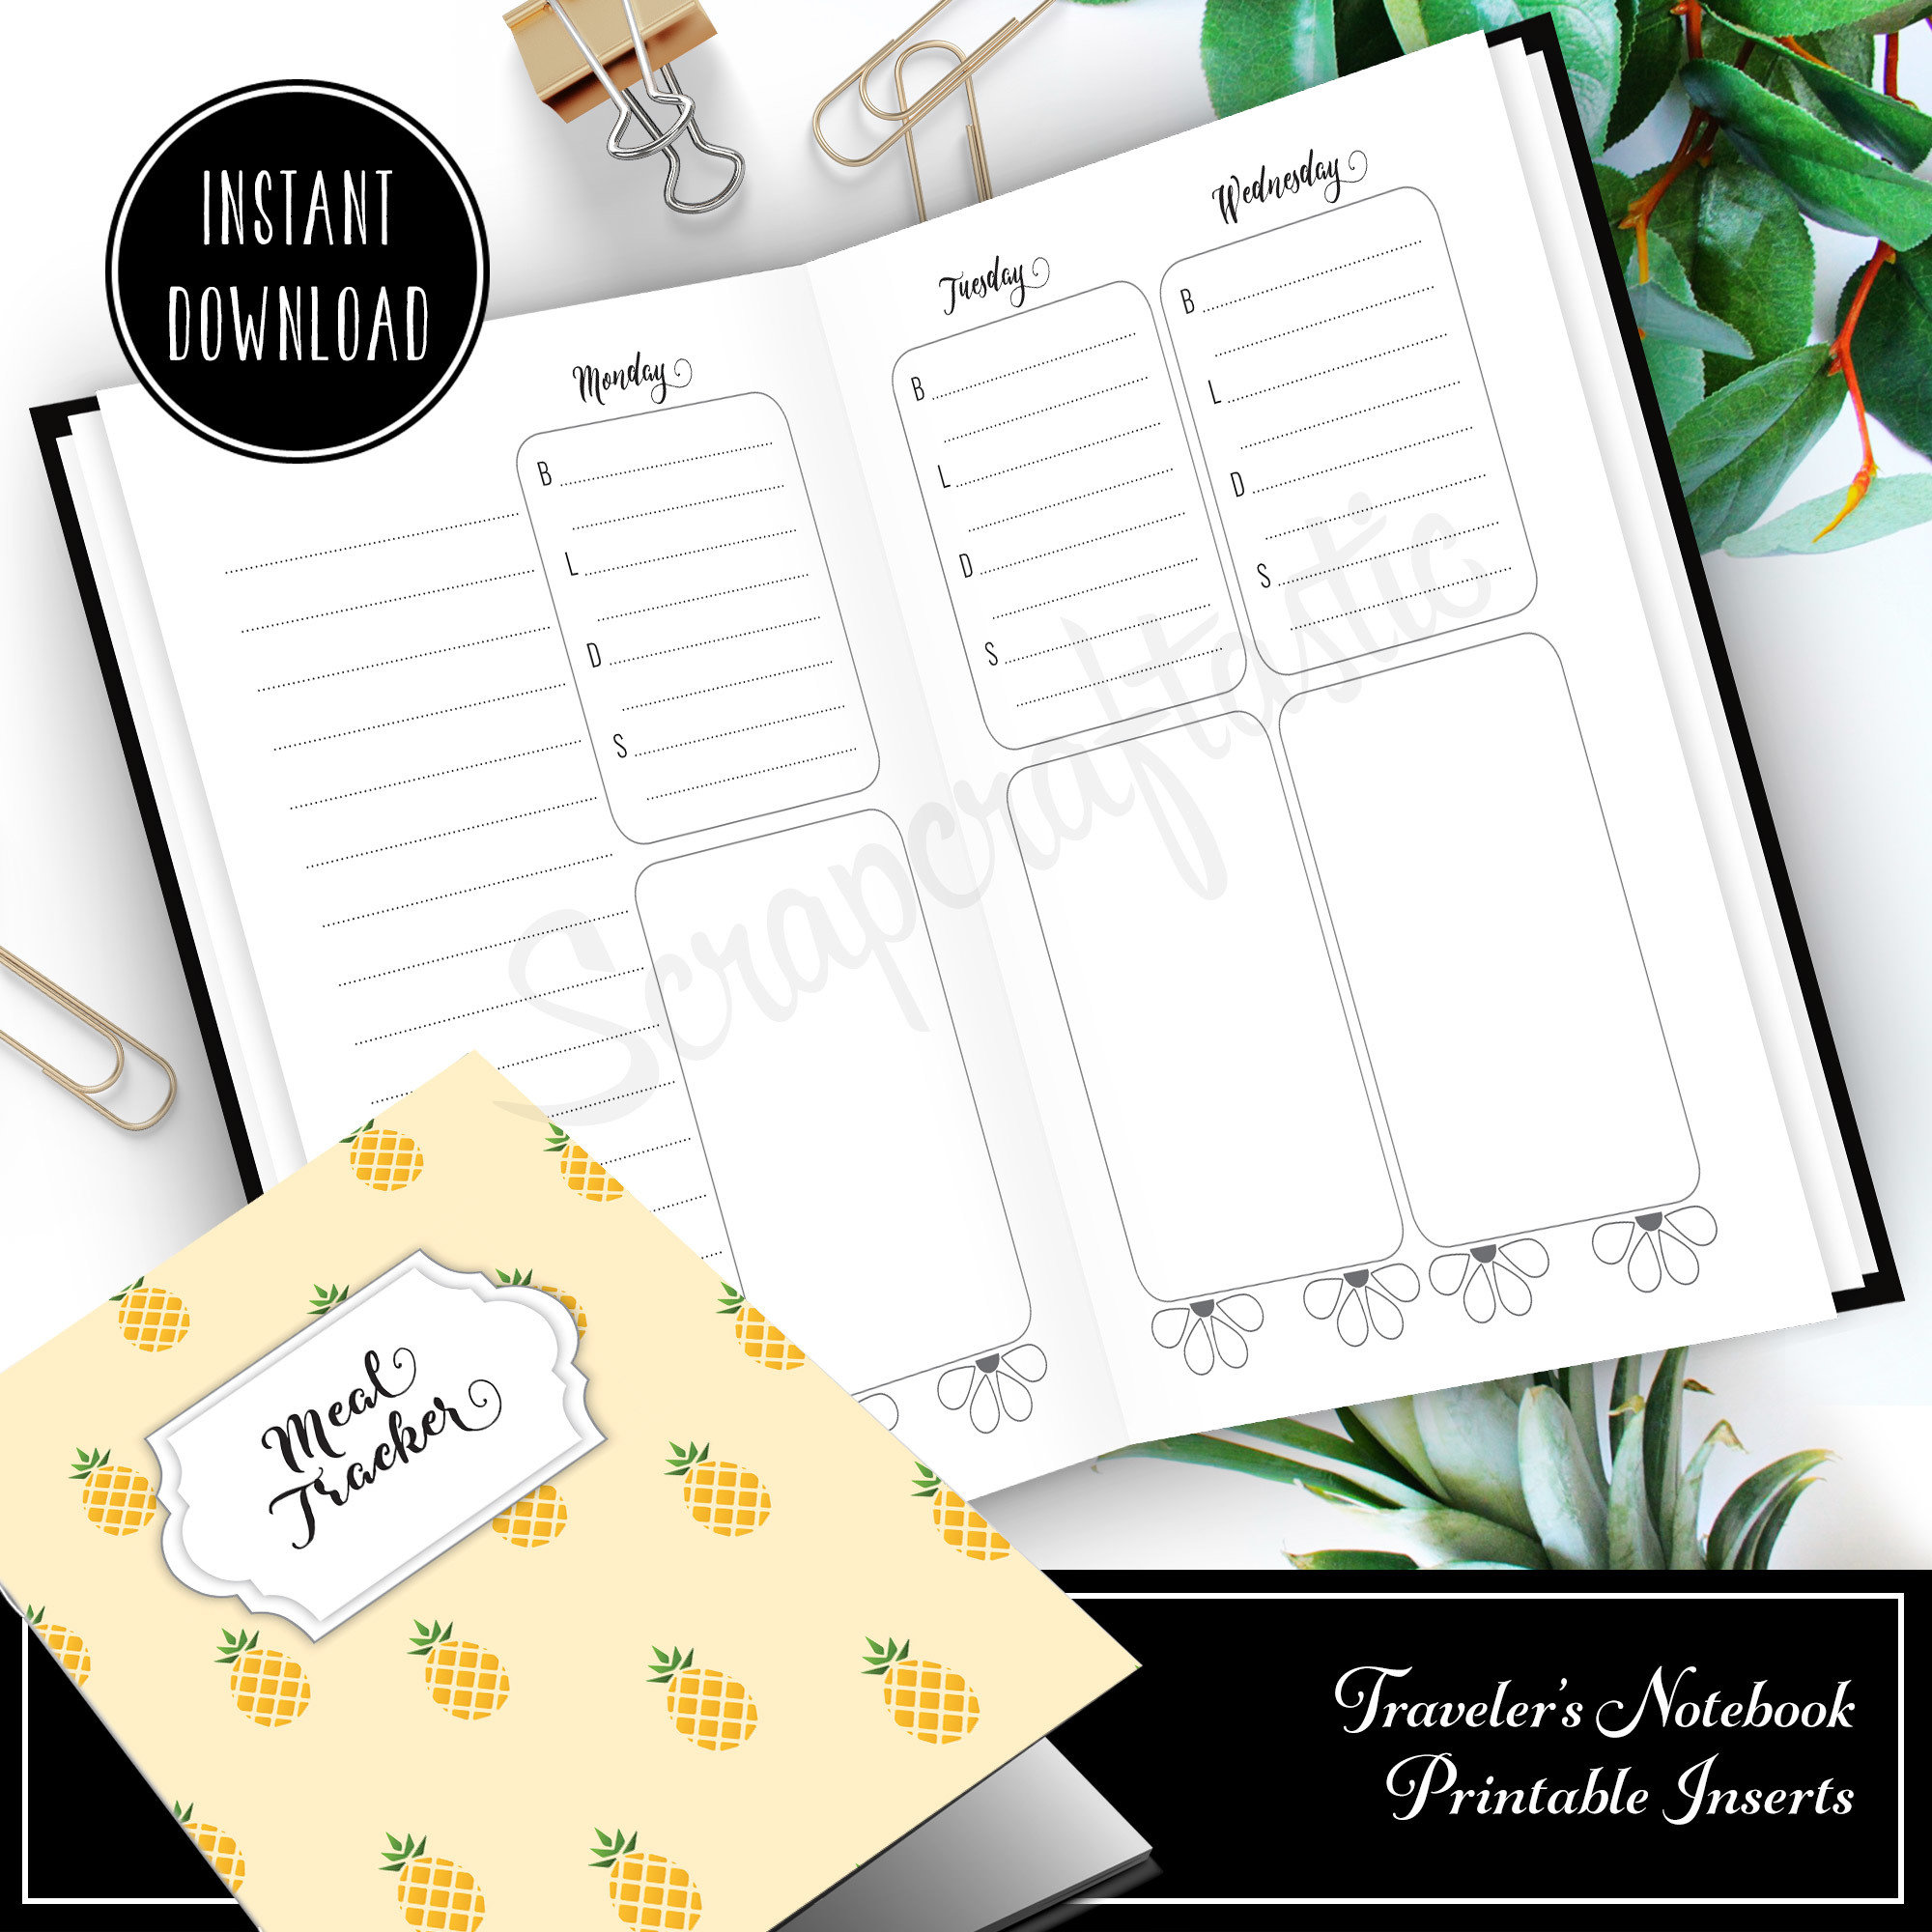 Meal Tracker Notebook:  B6 Printable Traveler's Notebook with WO4P and Grocery Checklist with grid pages 50002